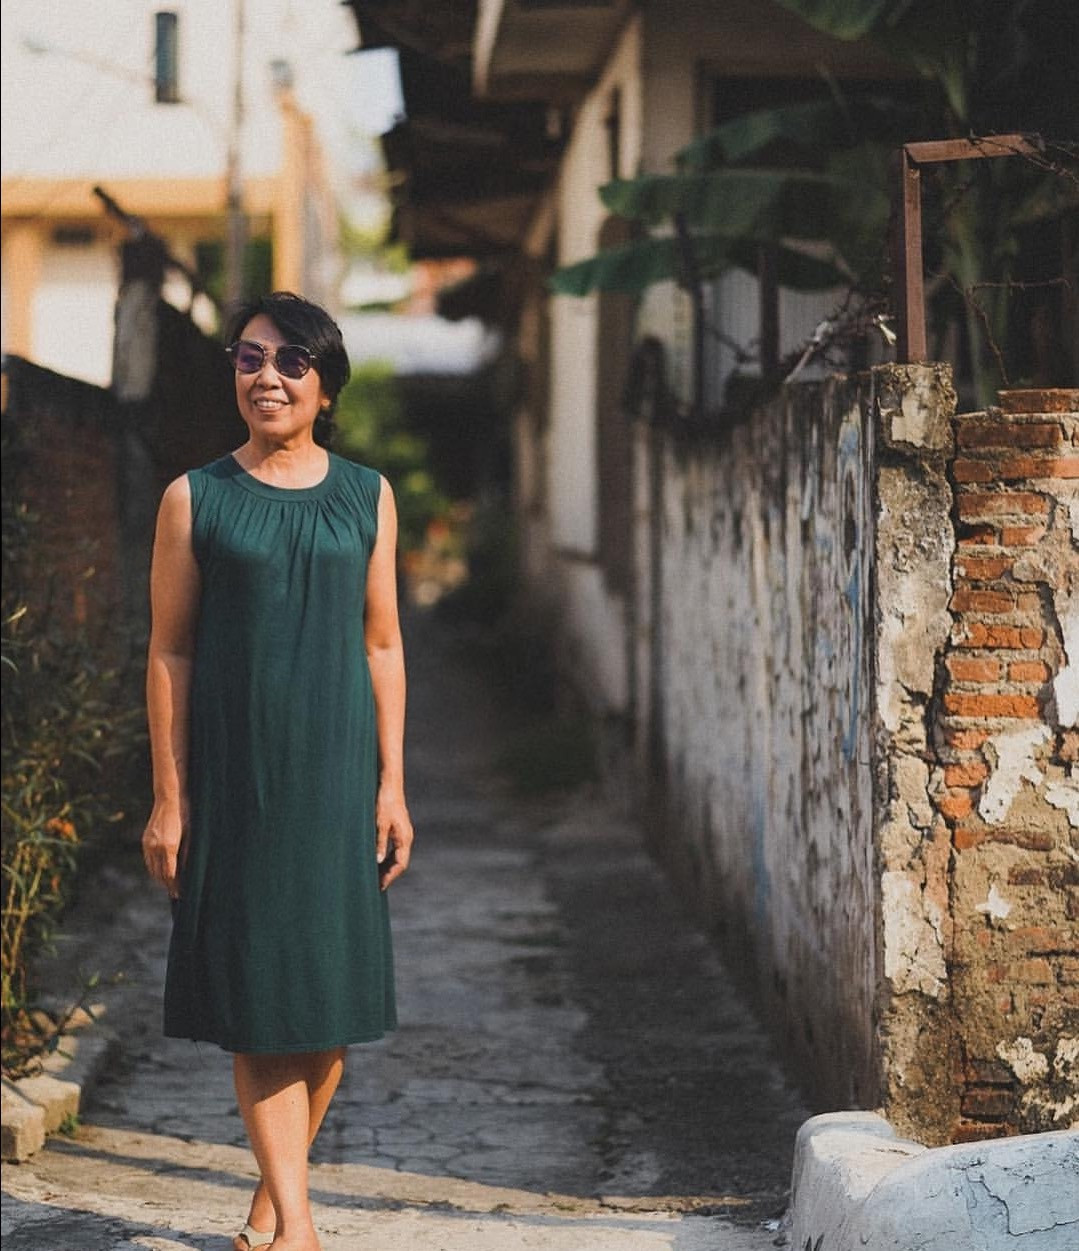 Scene stealer Dayu Wijanto an actress in her own right